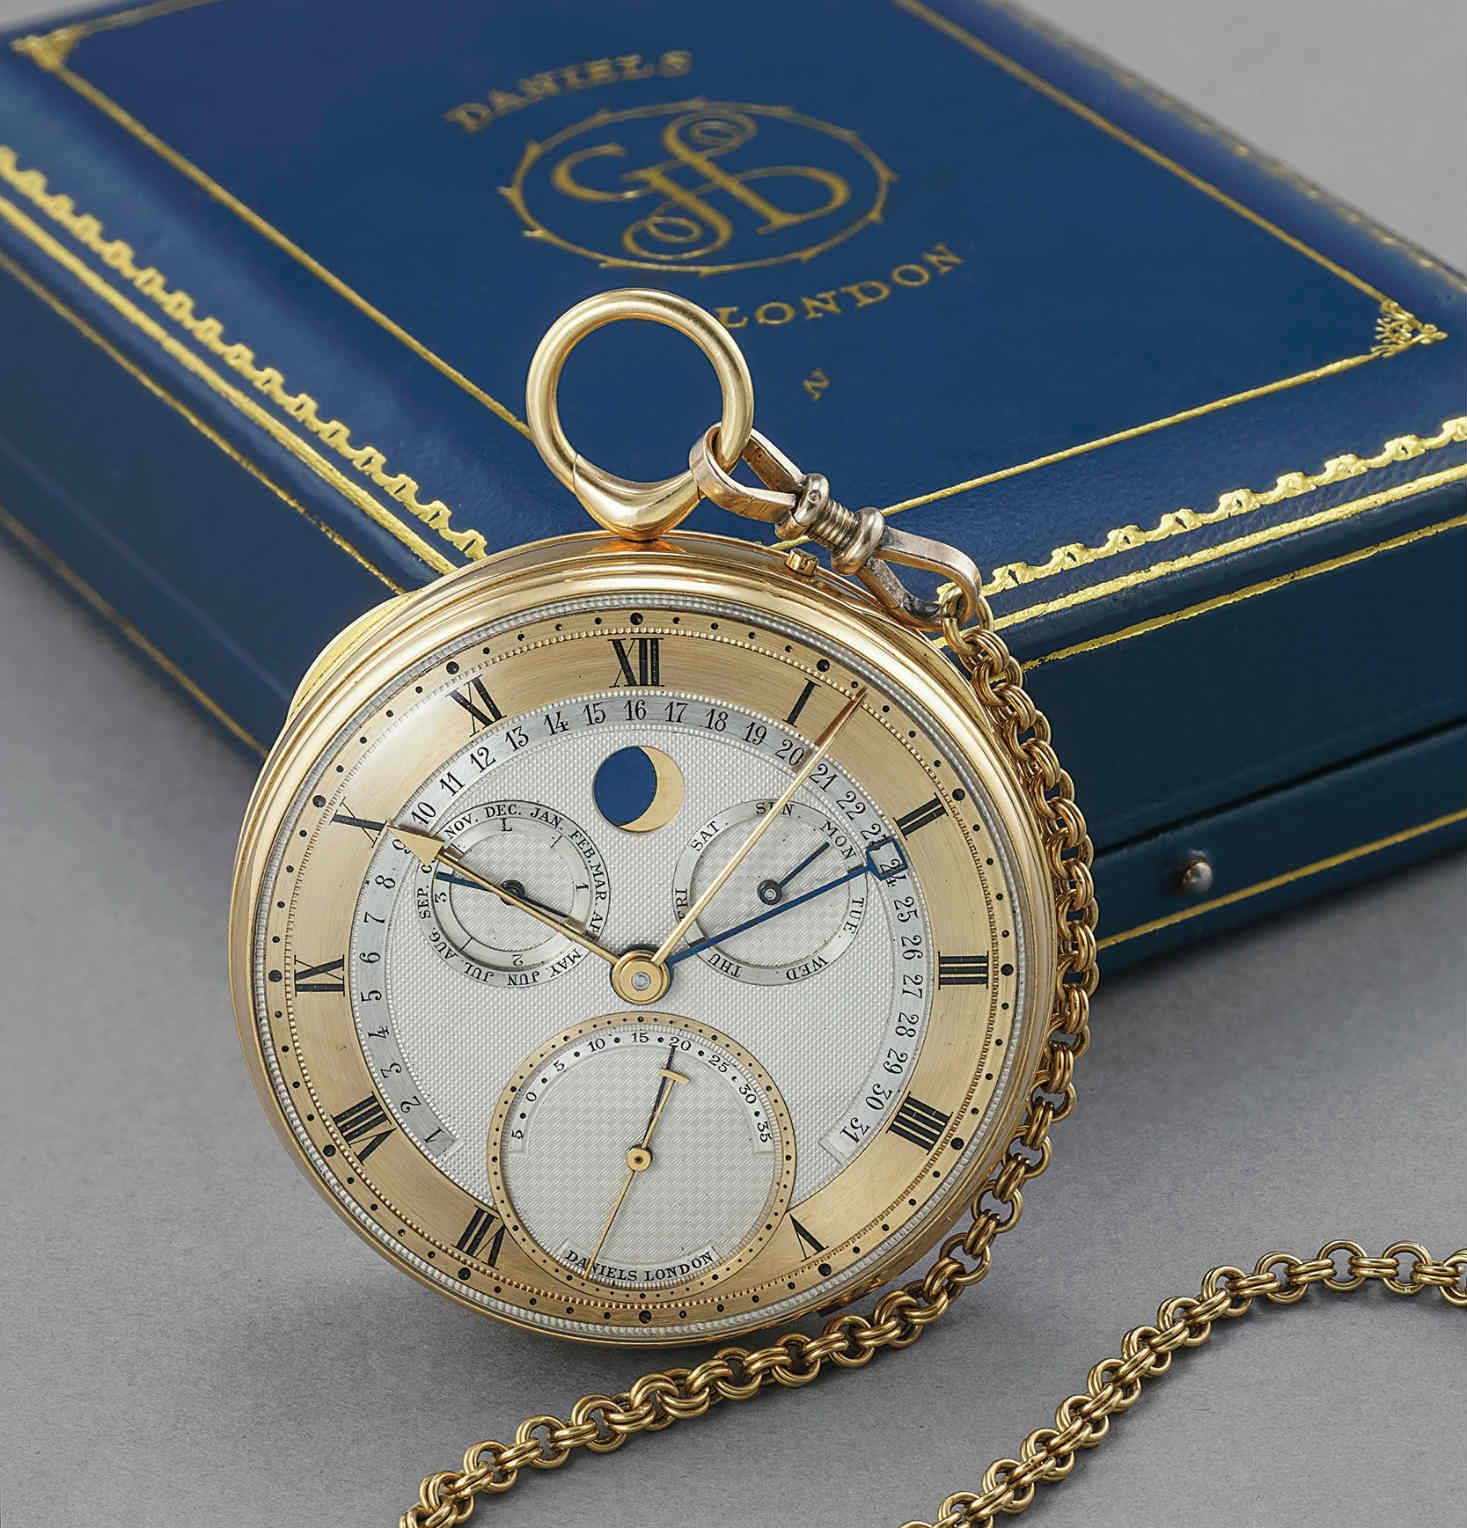 George Daniels grand complication watch at the Geneva auction